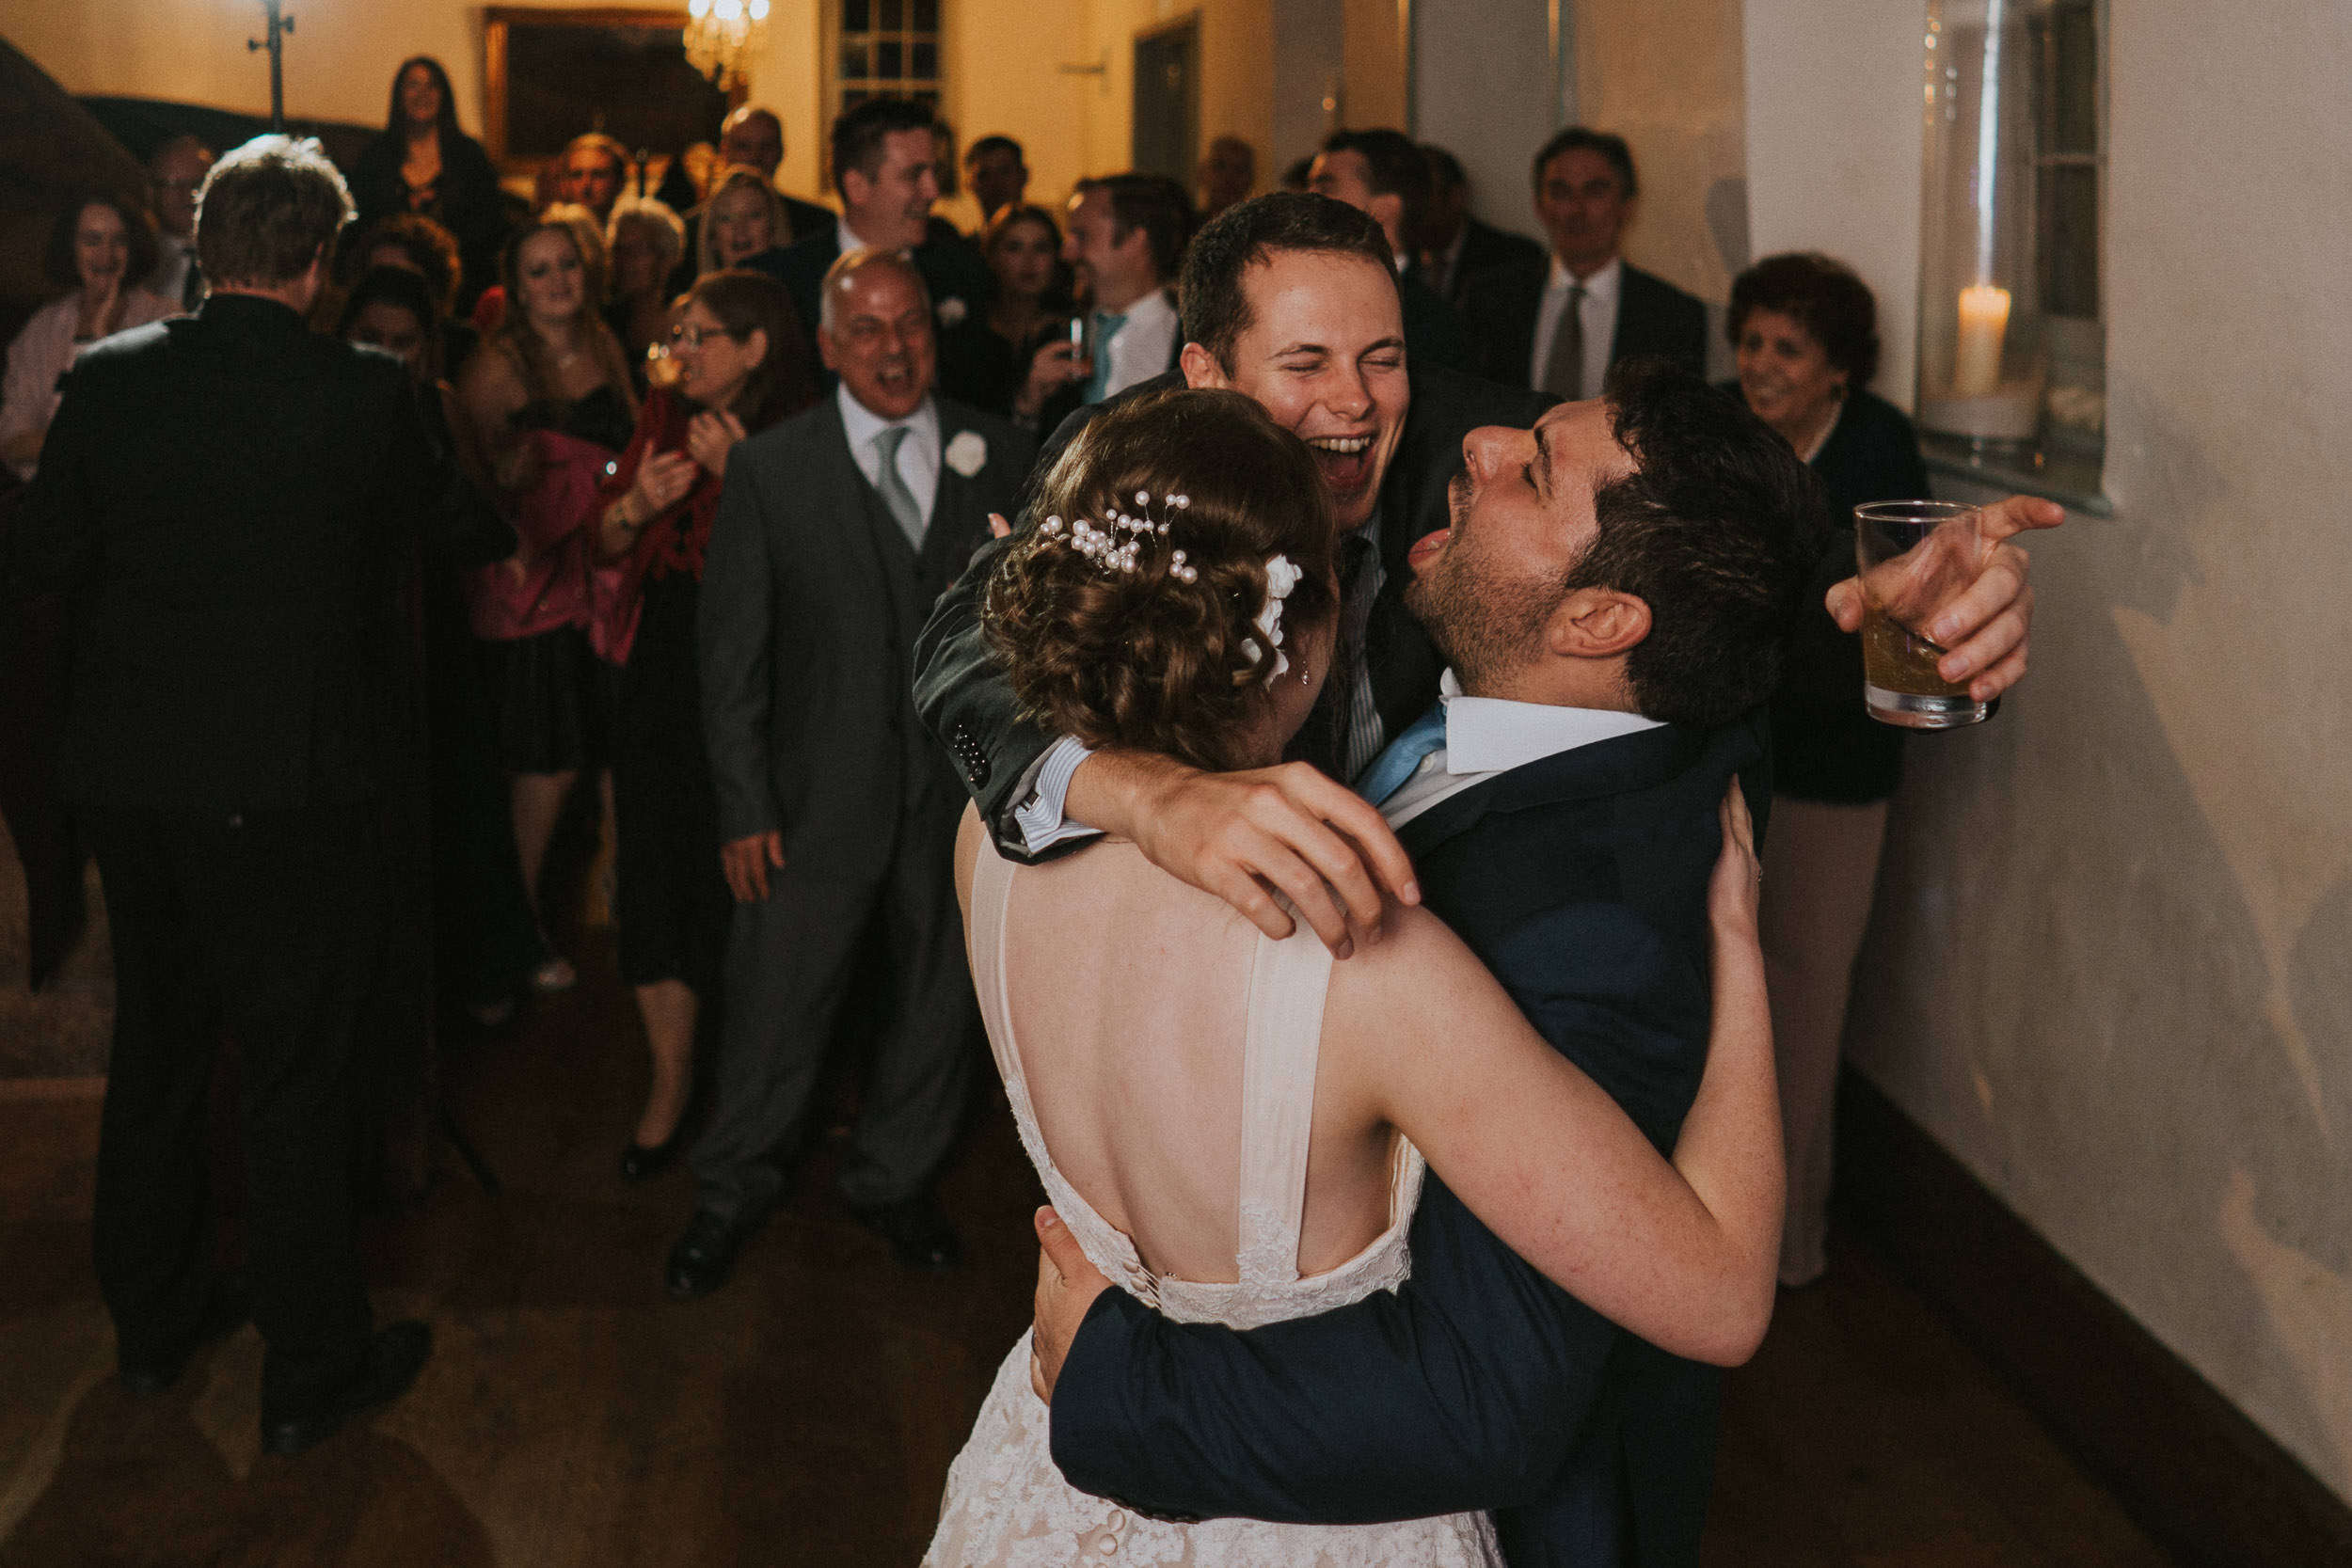 Pennard House Wedding - First Dance